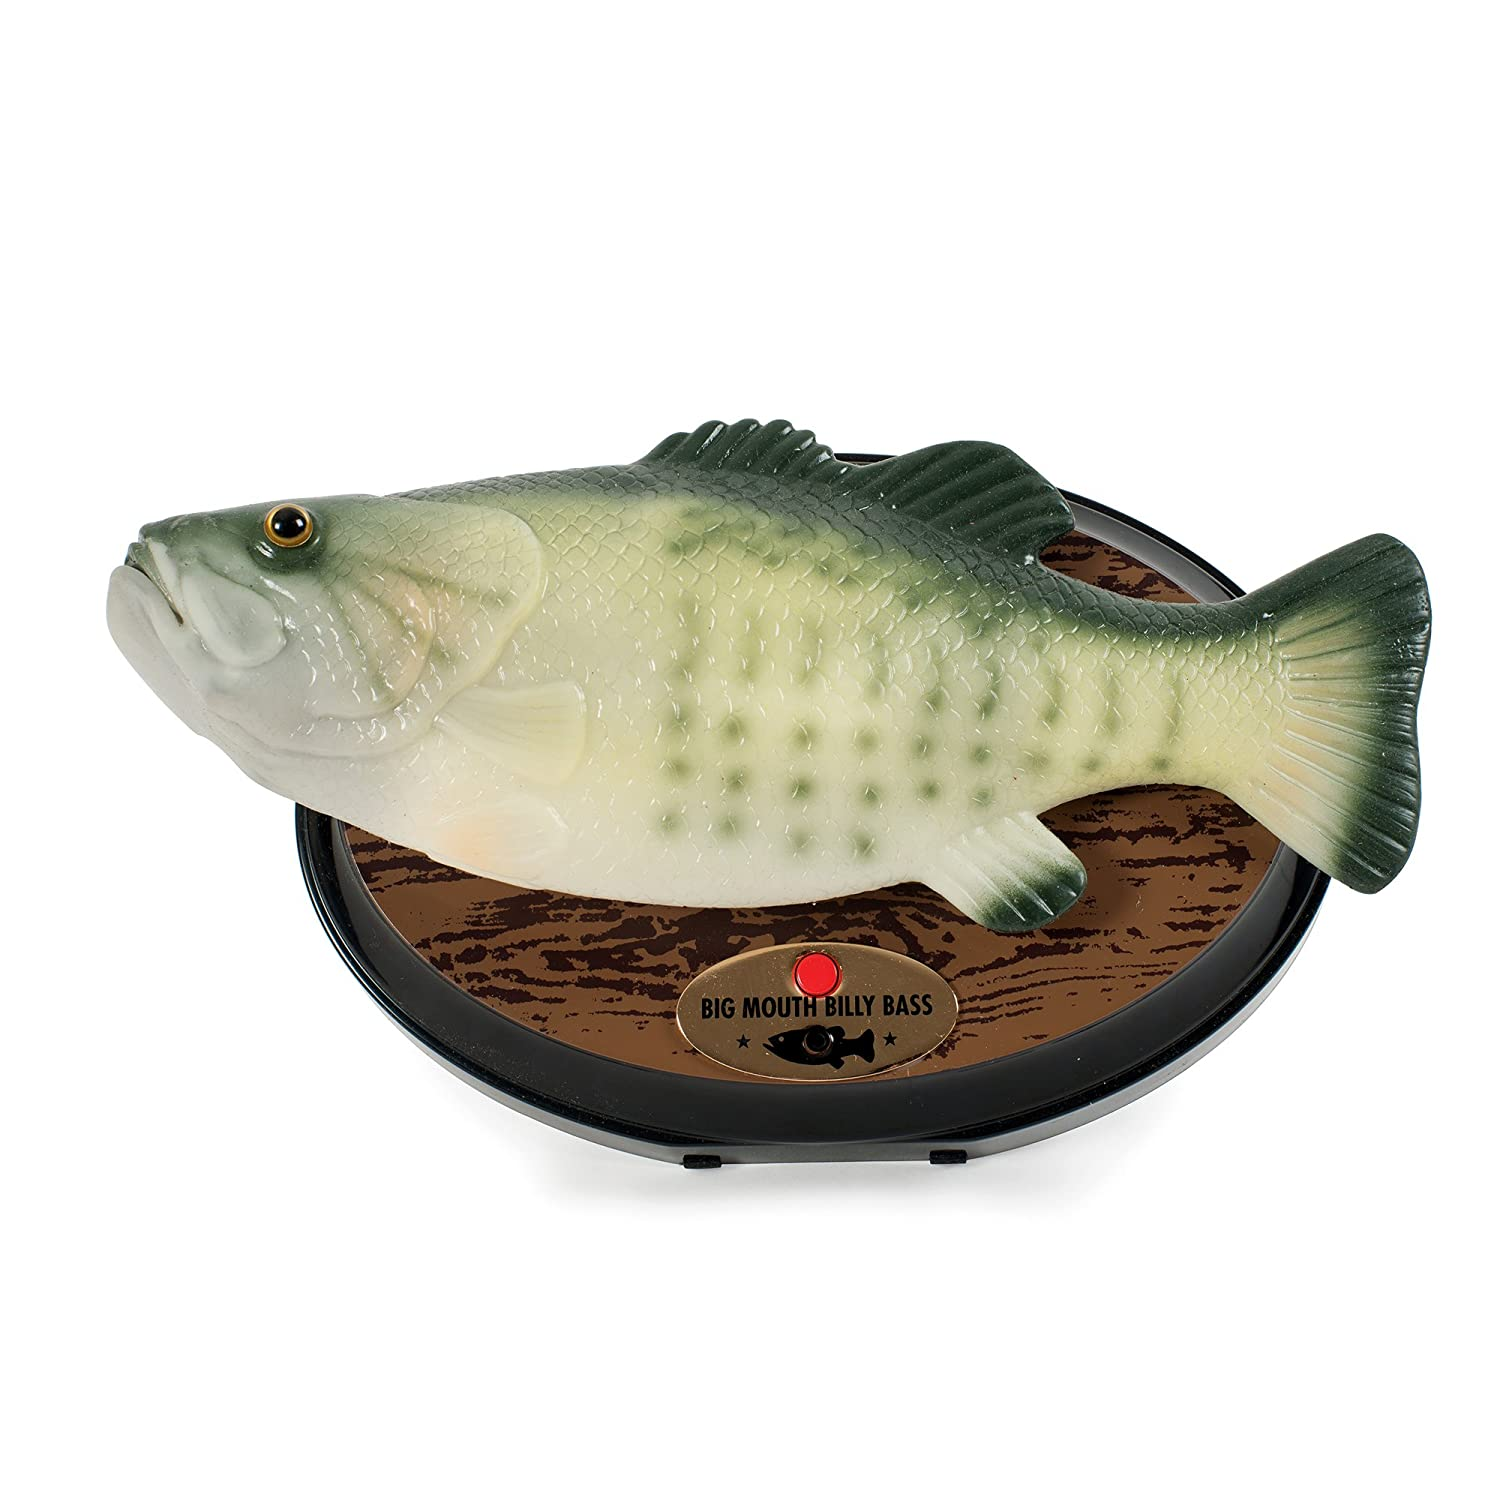 Toy BIG MOUTH BILLY BASS THE SINGING SENSATION